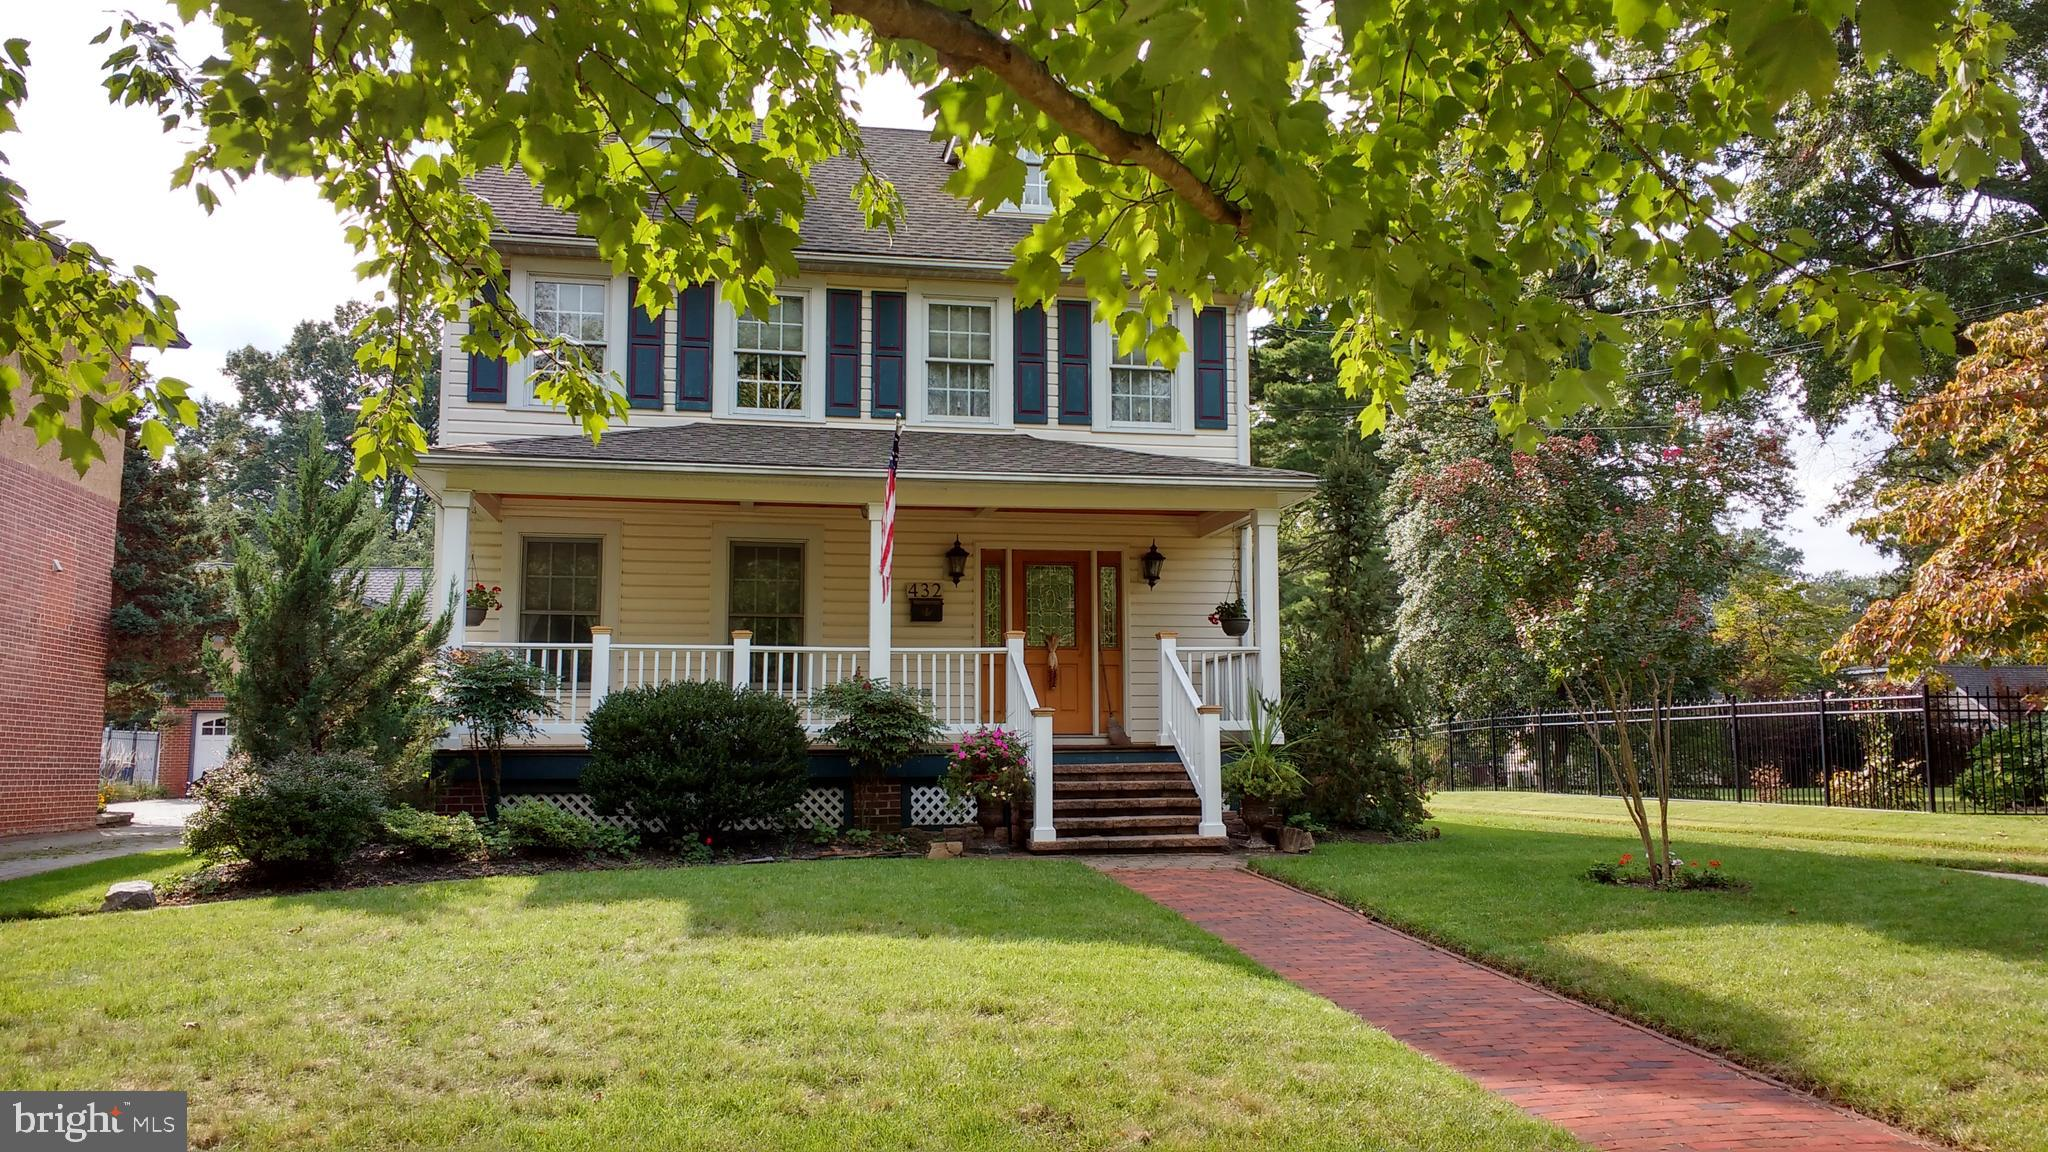 432 VIRGINIA AVE., COLLINGSWOOD, NJ 08107